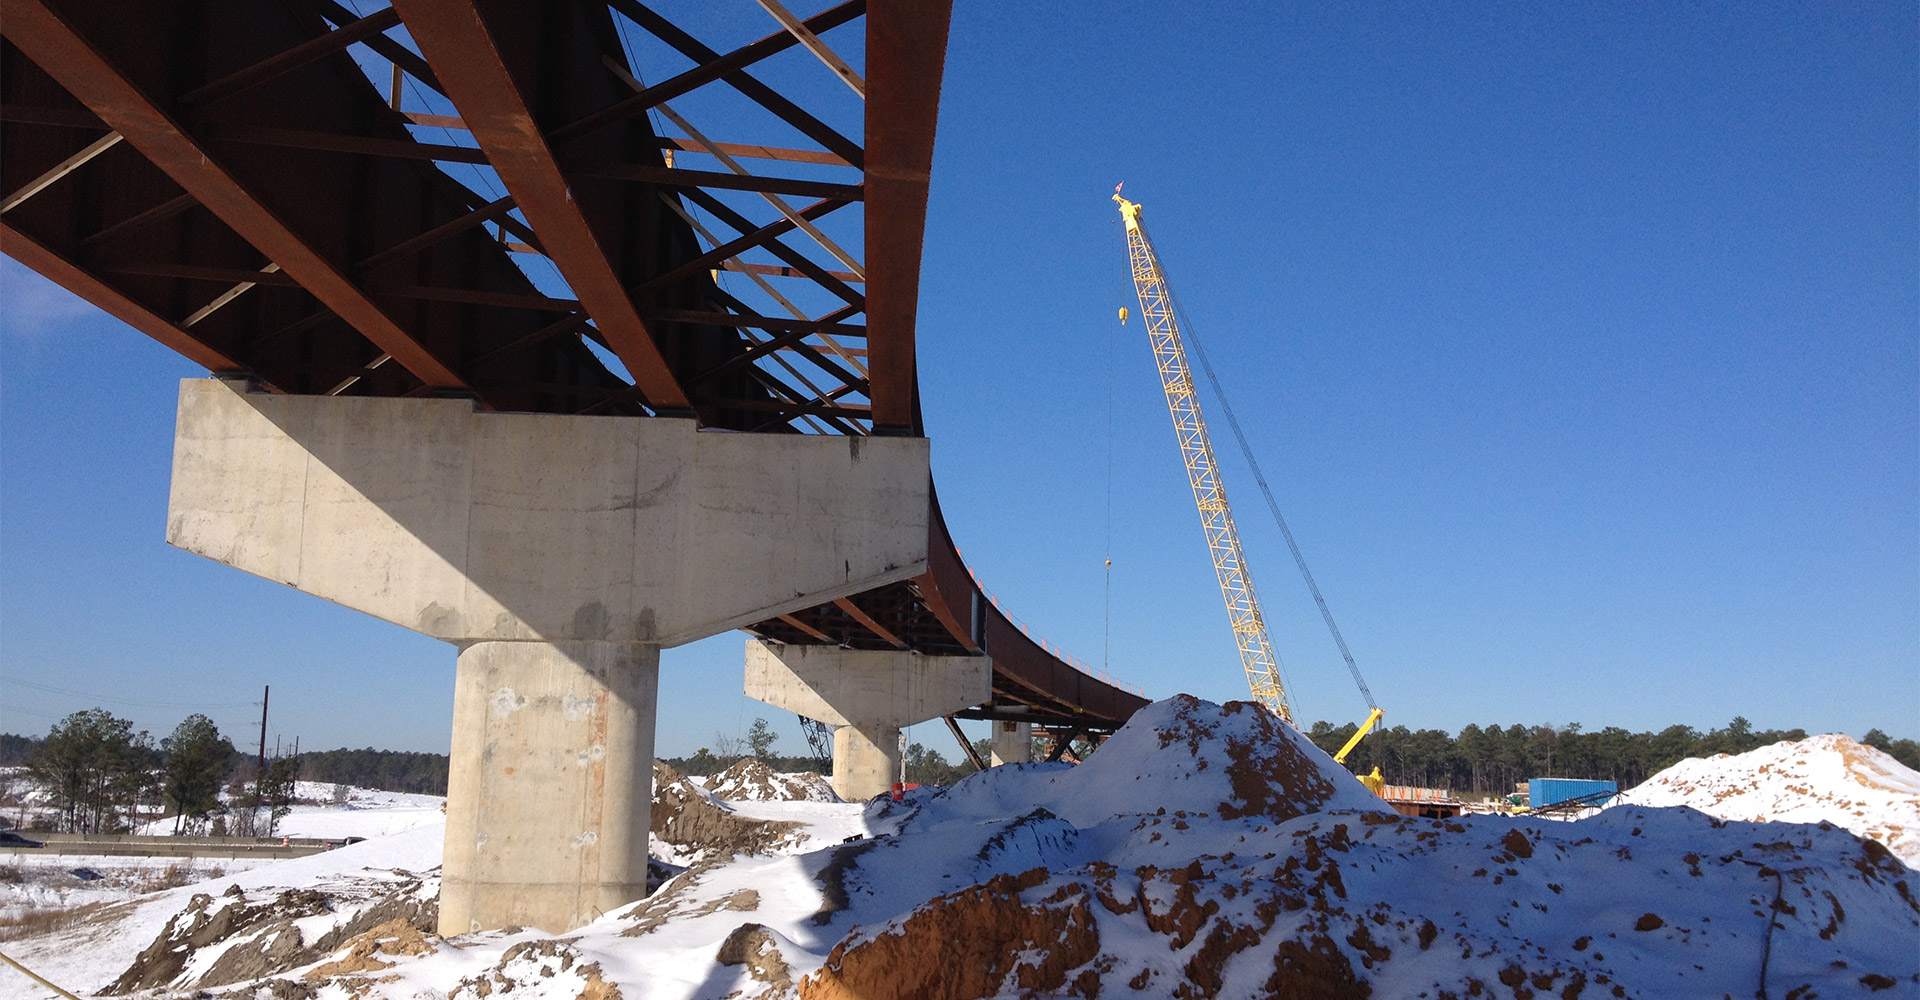 Construction of Fayetteville Outer Loop Project.